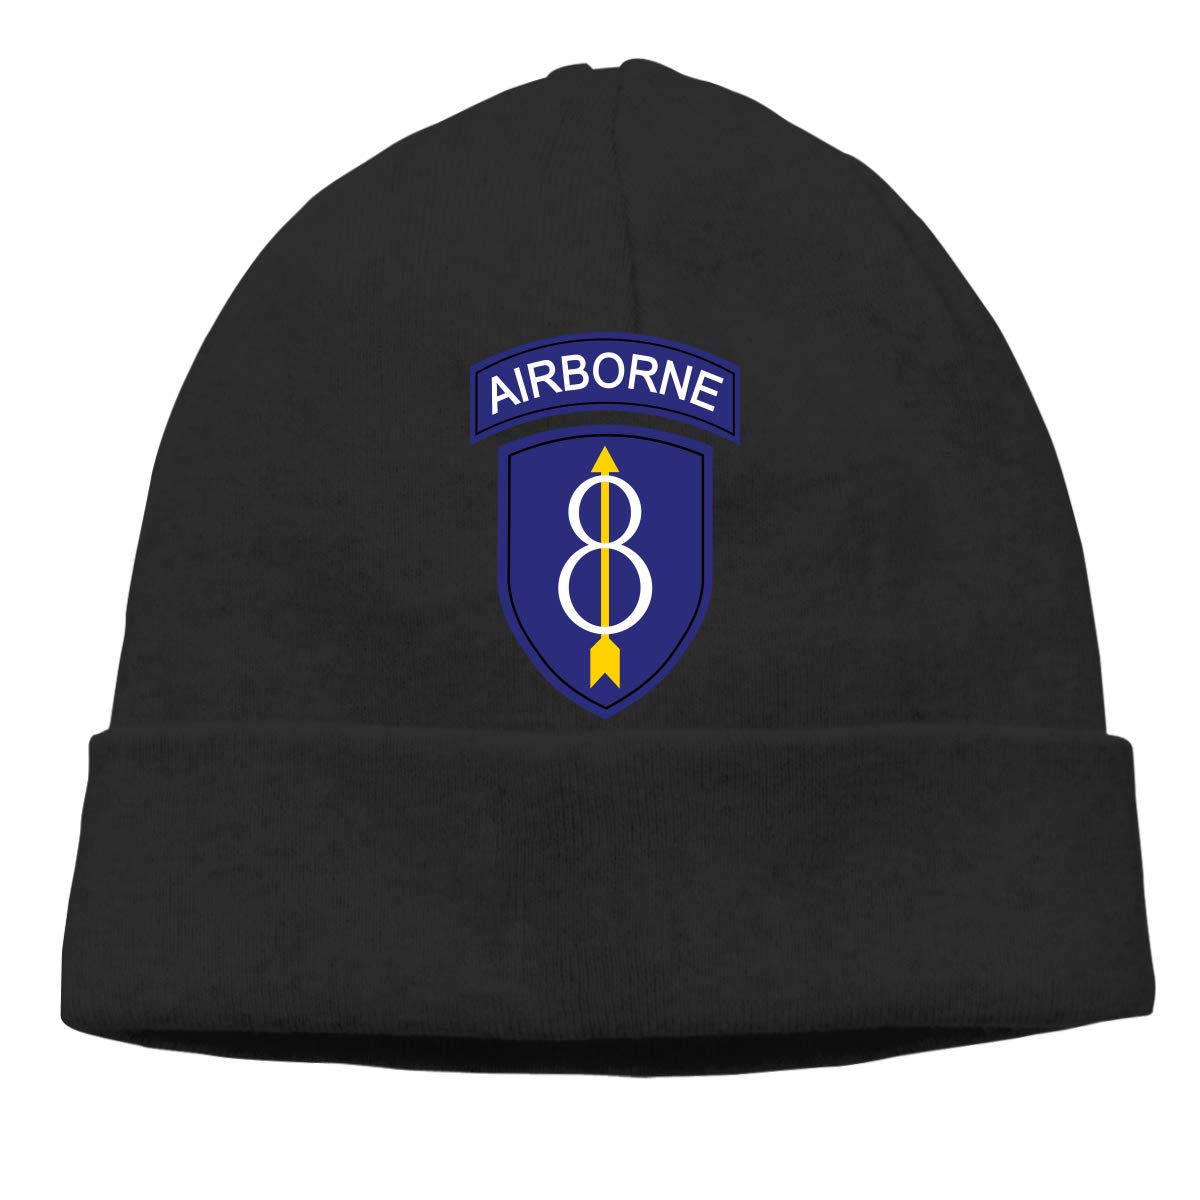 US 8th Airborne Infantry Division Unisex Knitted Hat Daily Knitting Beanies Caps Black